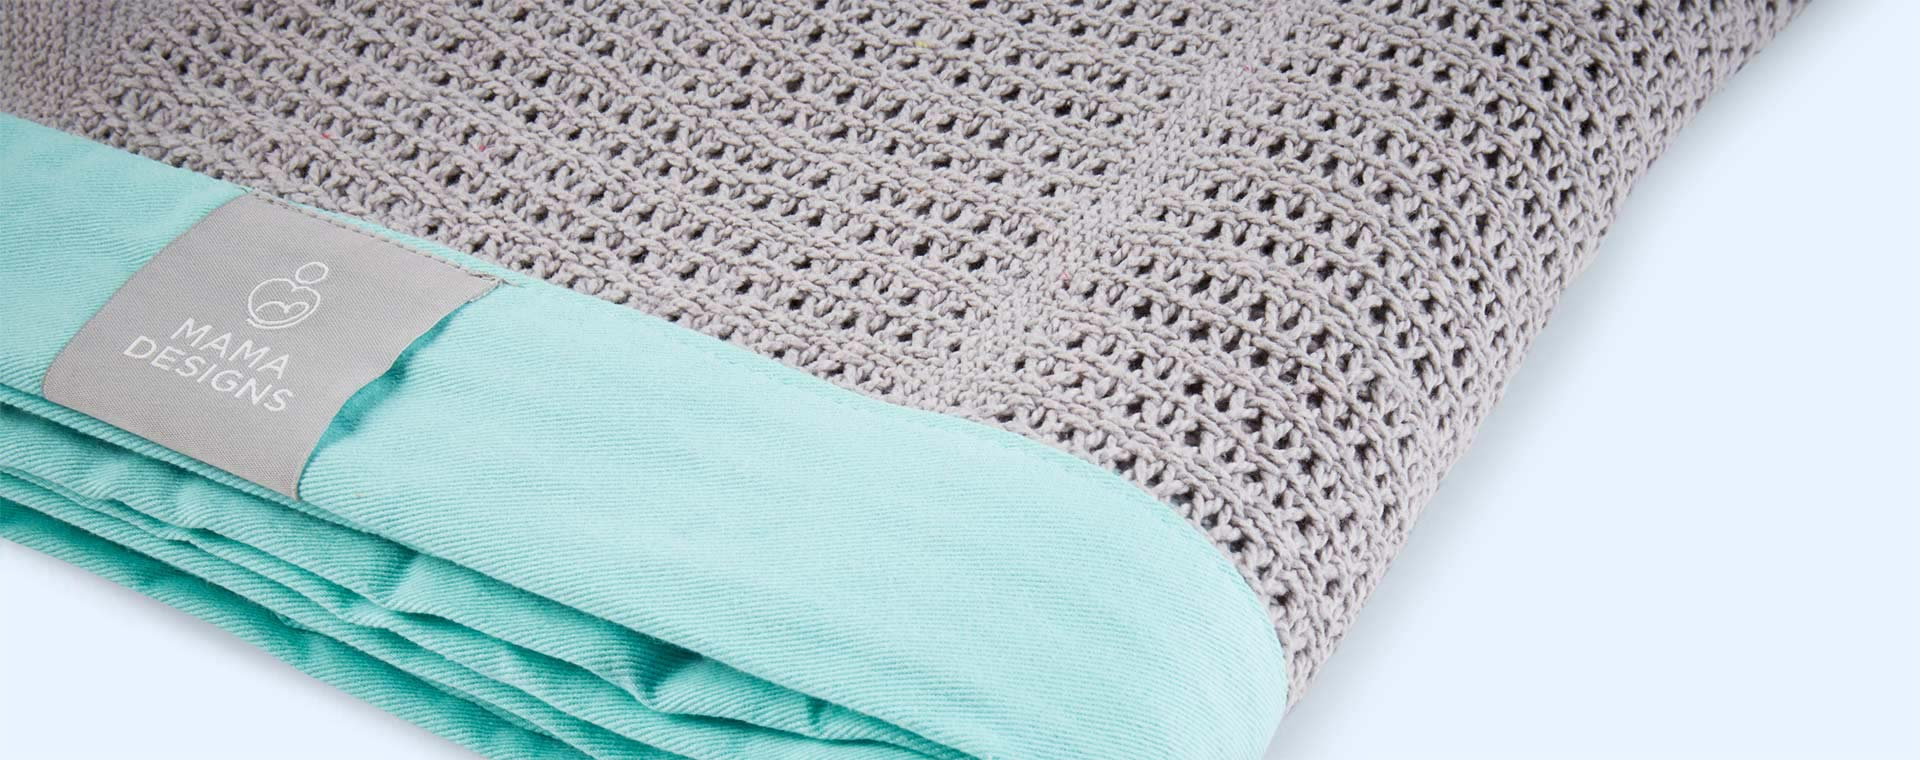 Grey and Turquoise Trim Mama Designs Cellular Blanket